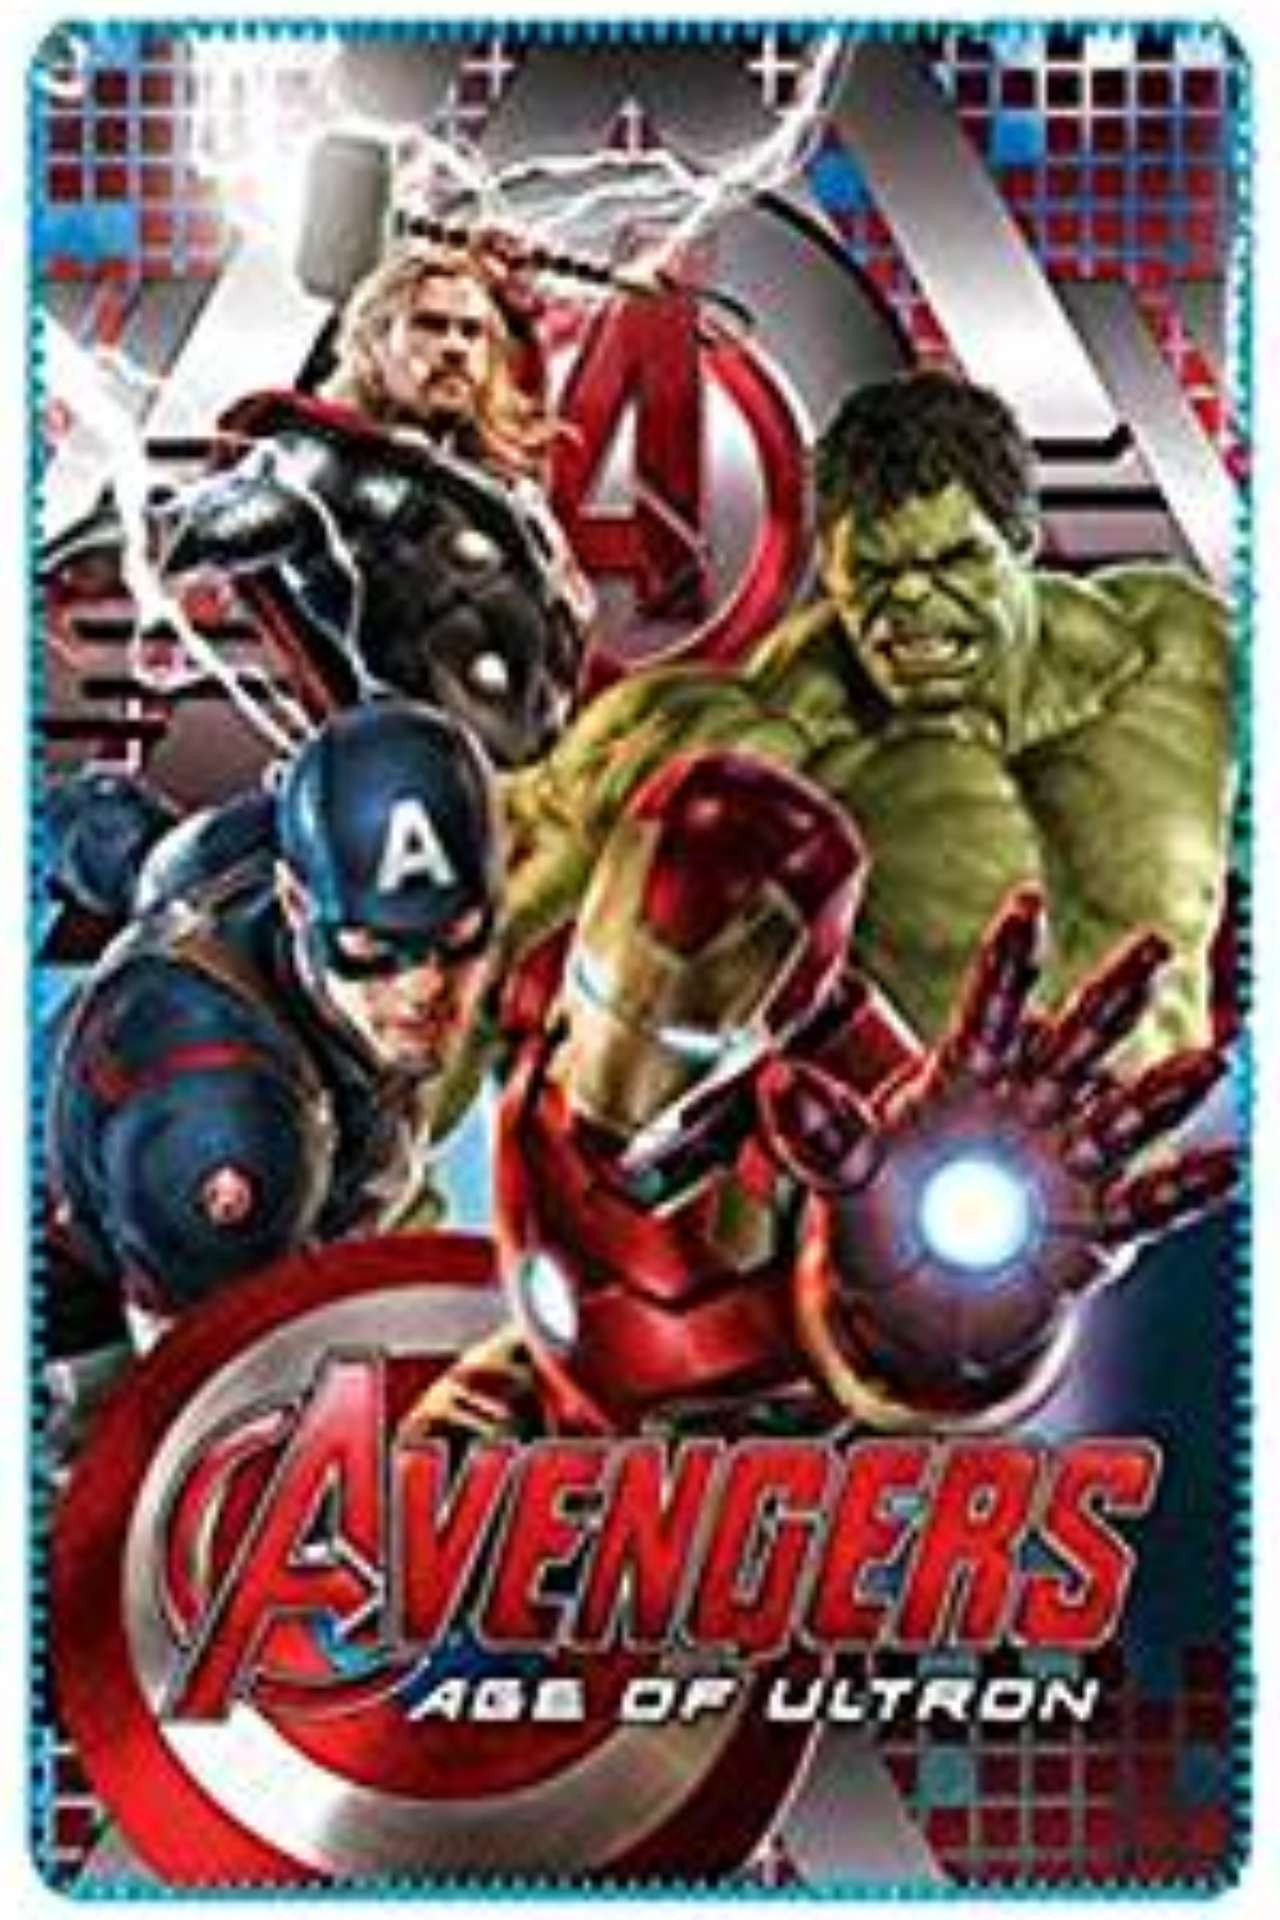 Marvel avengers soft fleece blanket Age of Ultron